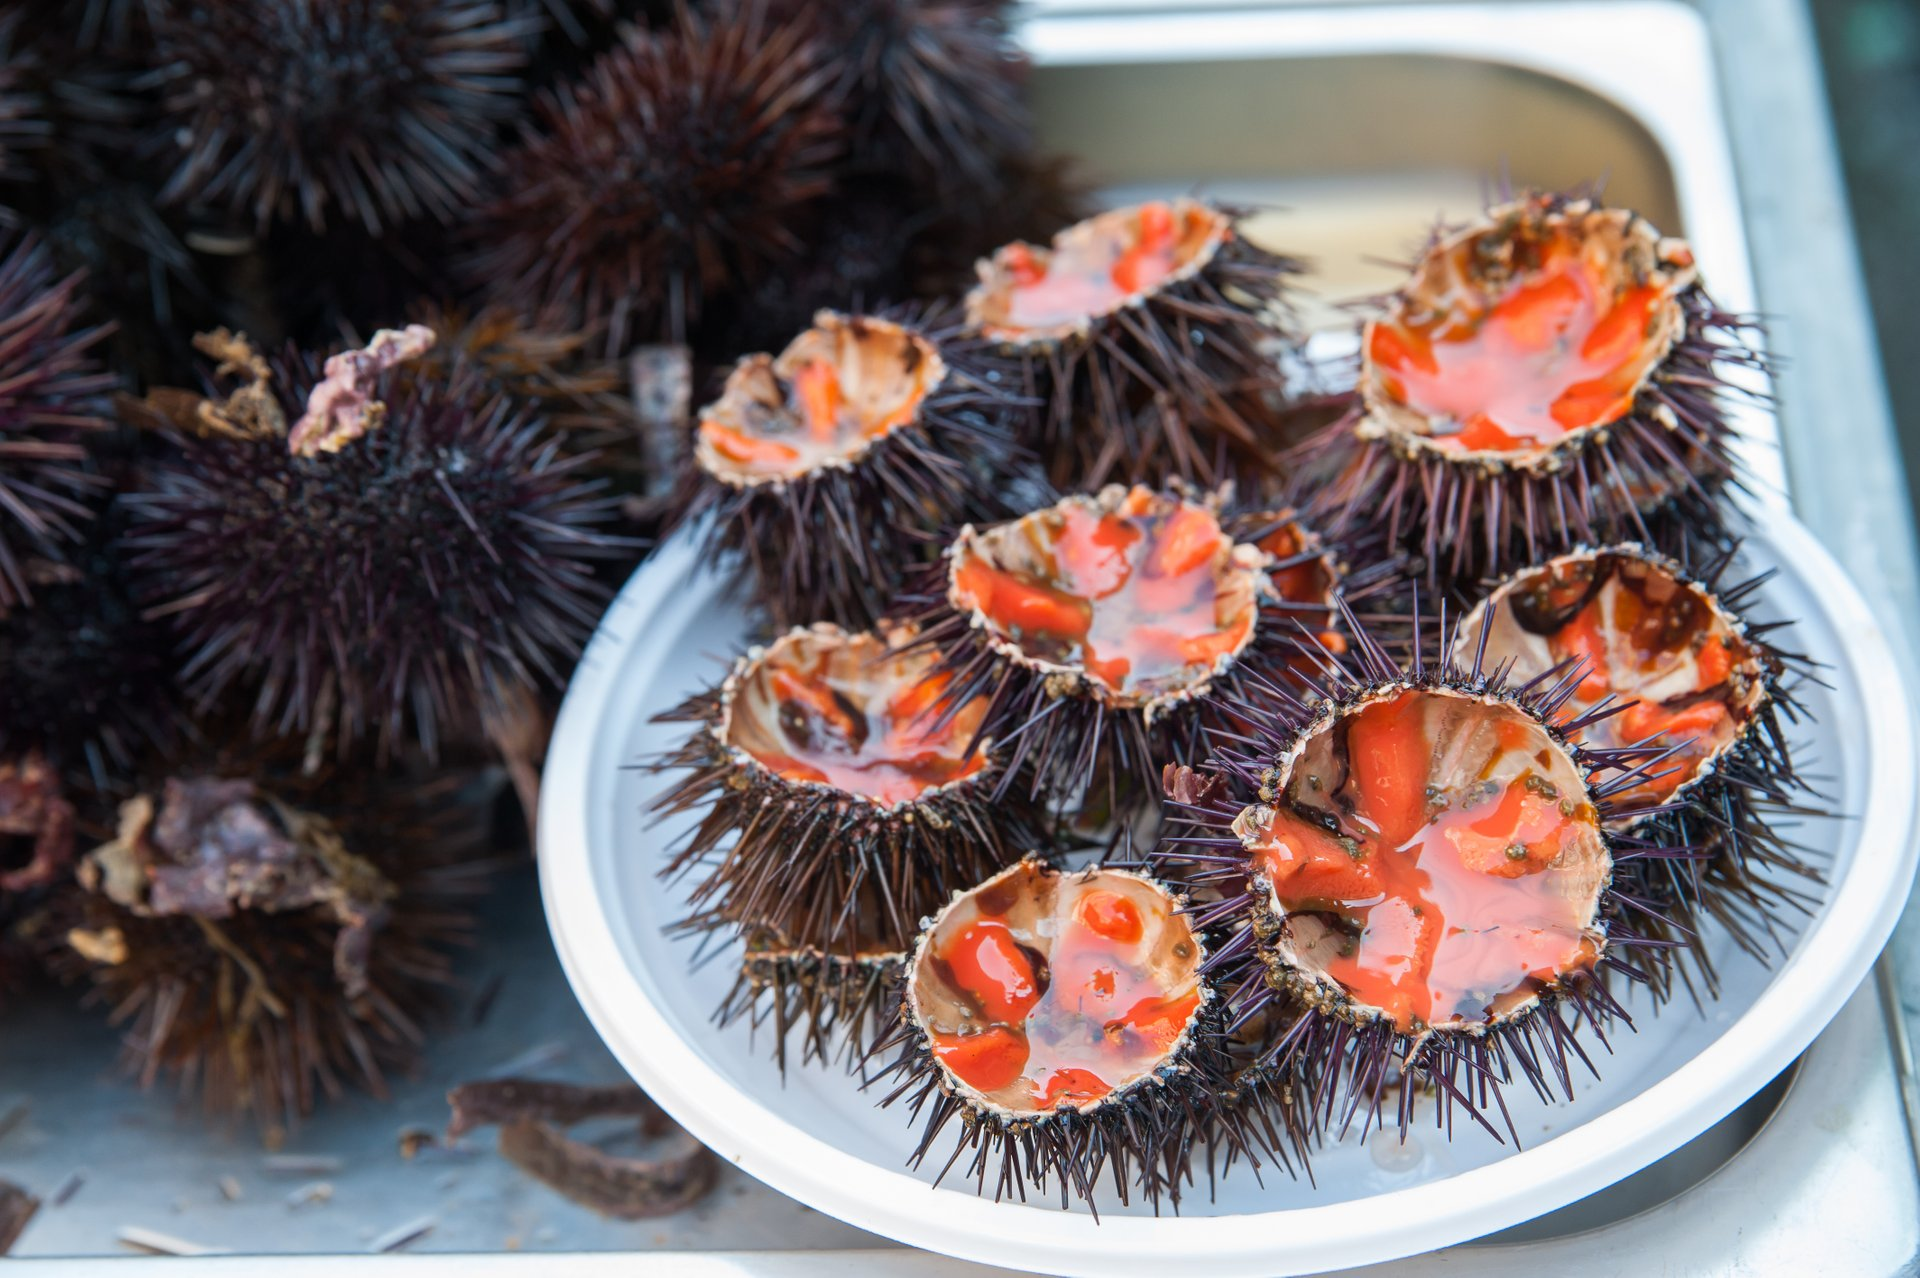 Sea Urchins in Sicily 2020 - Best Time